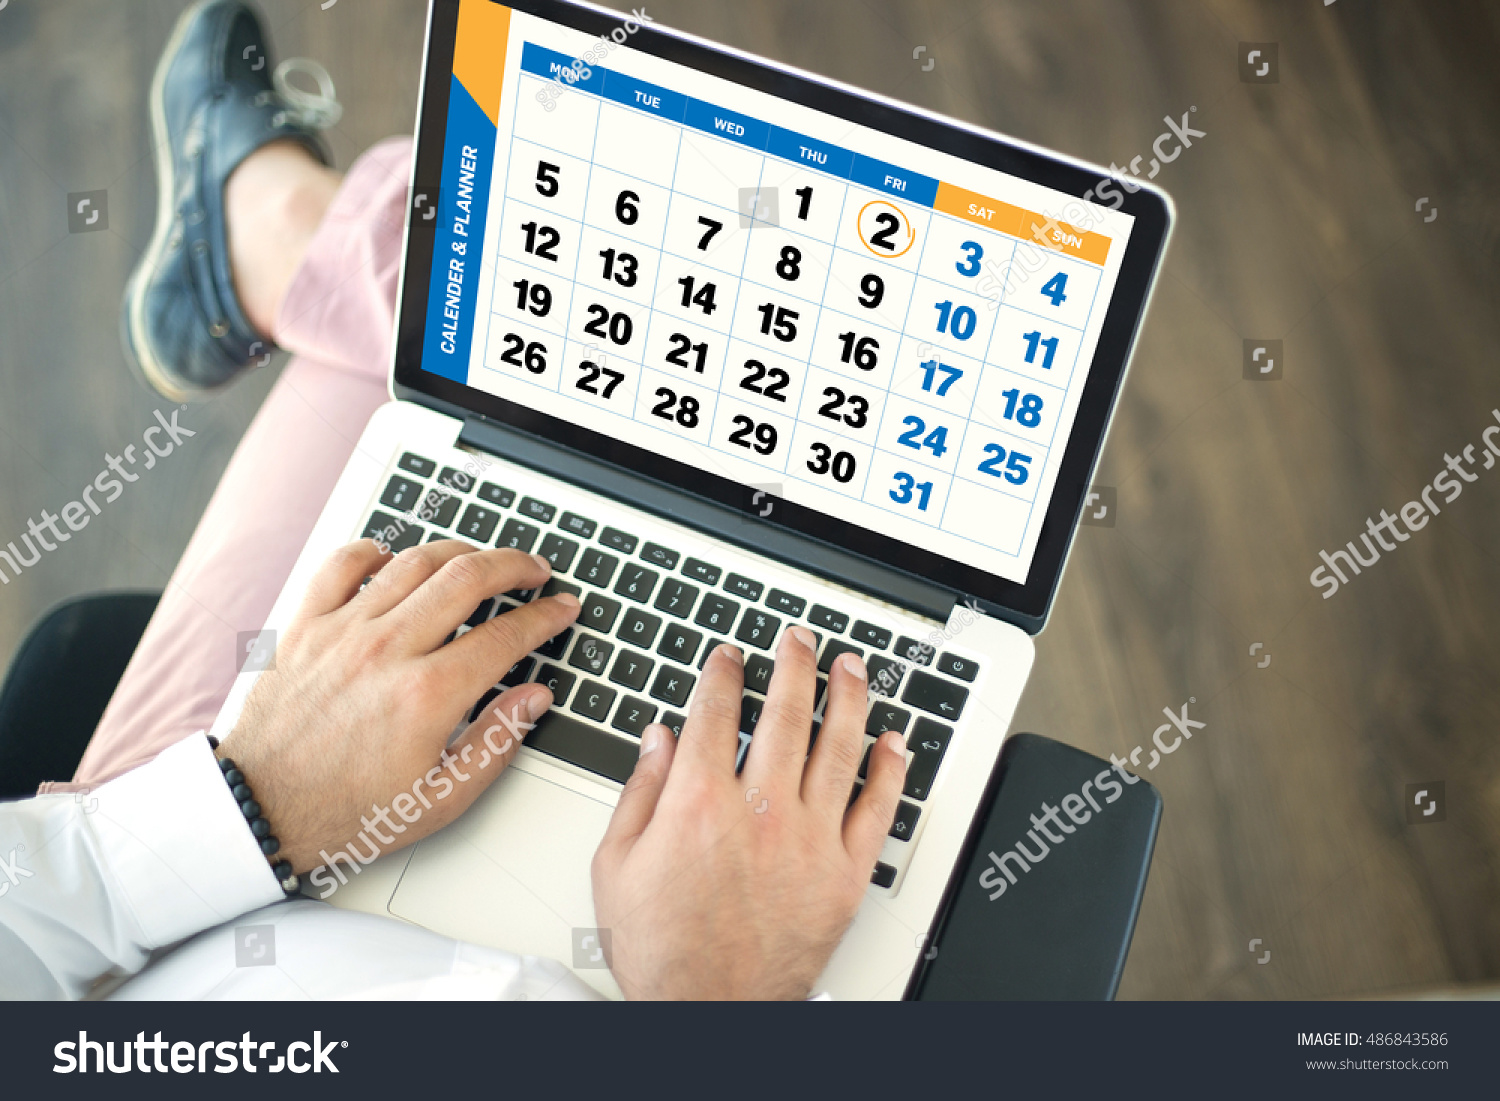 Calendar Planner For Laptop : People using laptop monthly planner calendar stock photo